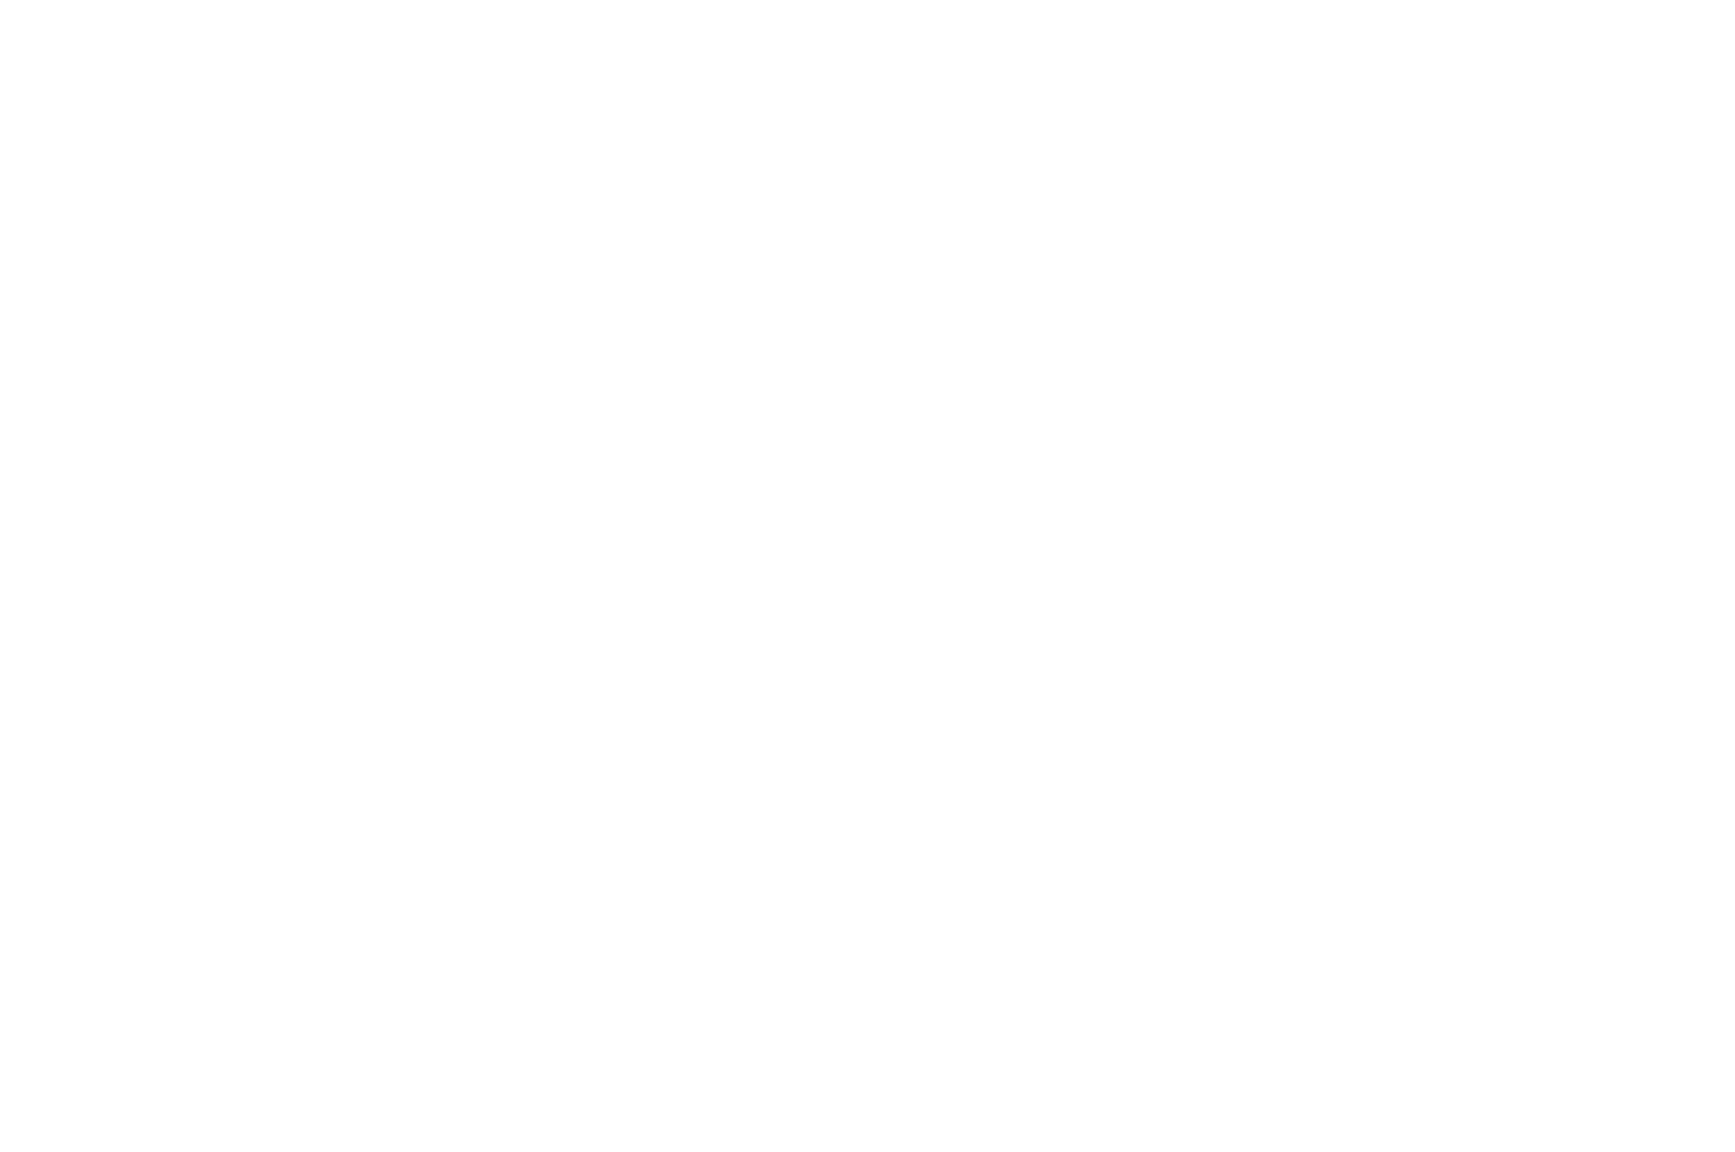 AUDIENCE CHOICE AWARD - International Christian Film Festival - 2017.png